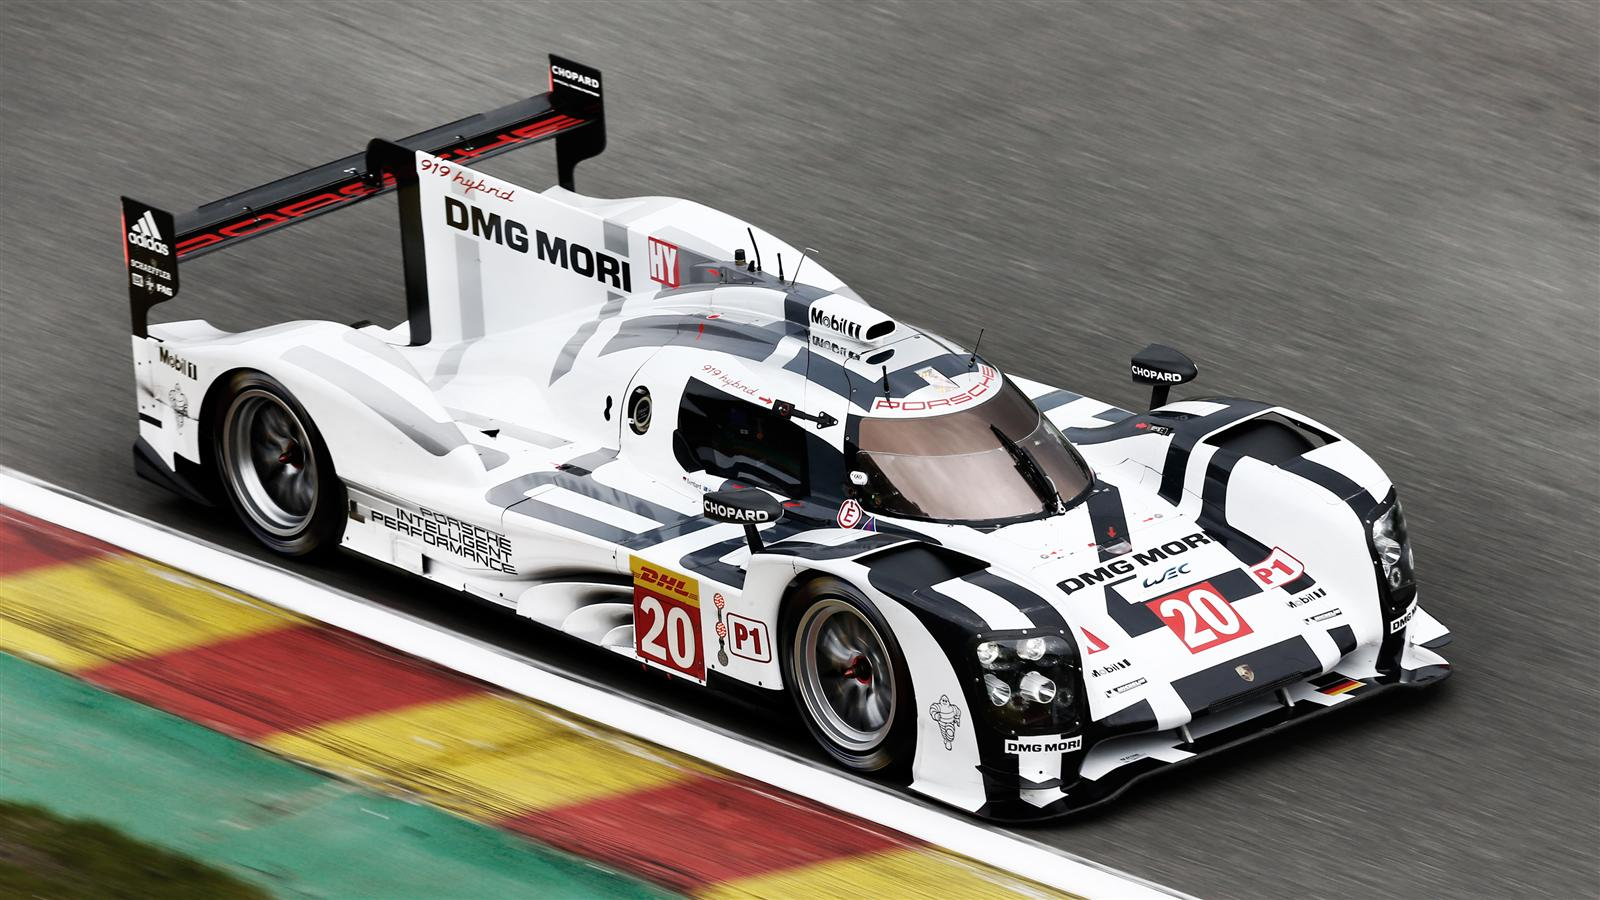 porsche 919 hybrid le mans wallpaper - free hd download